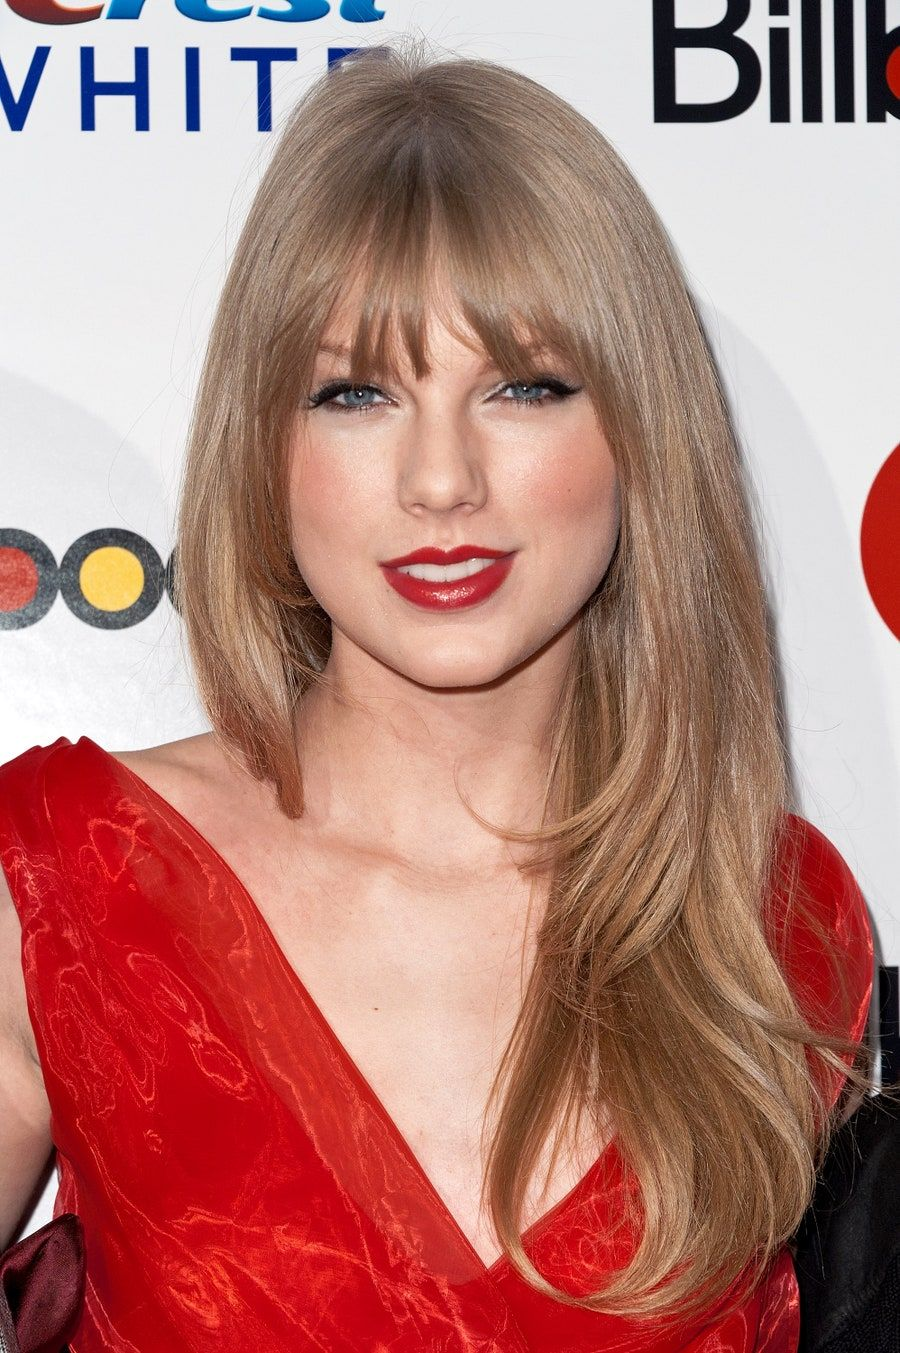 Taylor Swift S Hair Evolution Allure In 2020 Taylor Swift Hair Color Hair Evolution Taylor Swift Hair